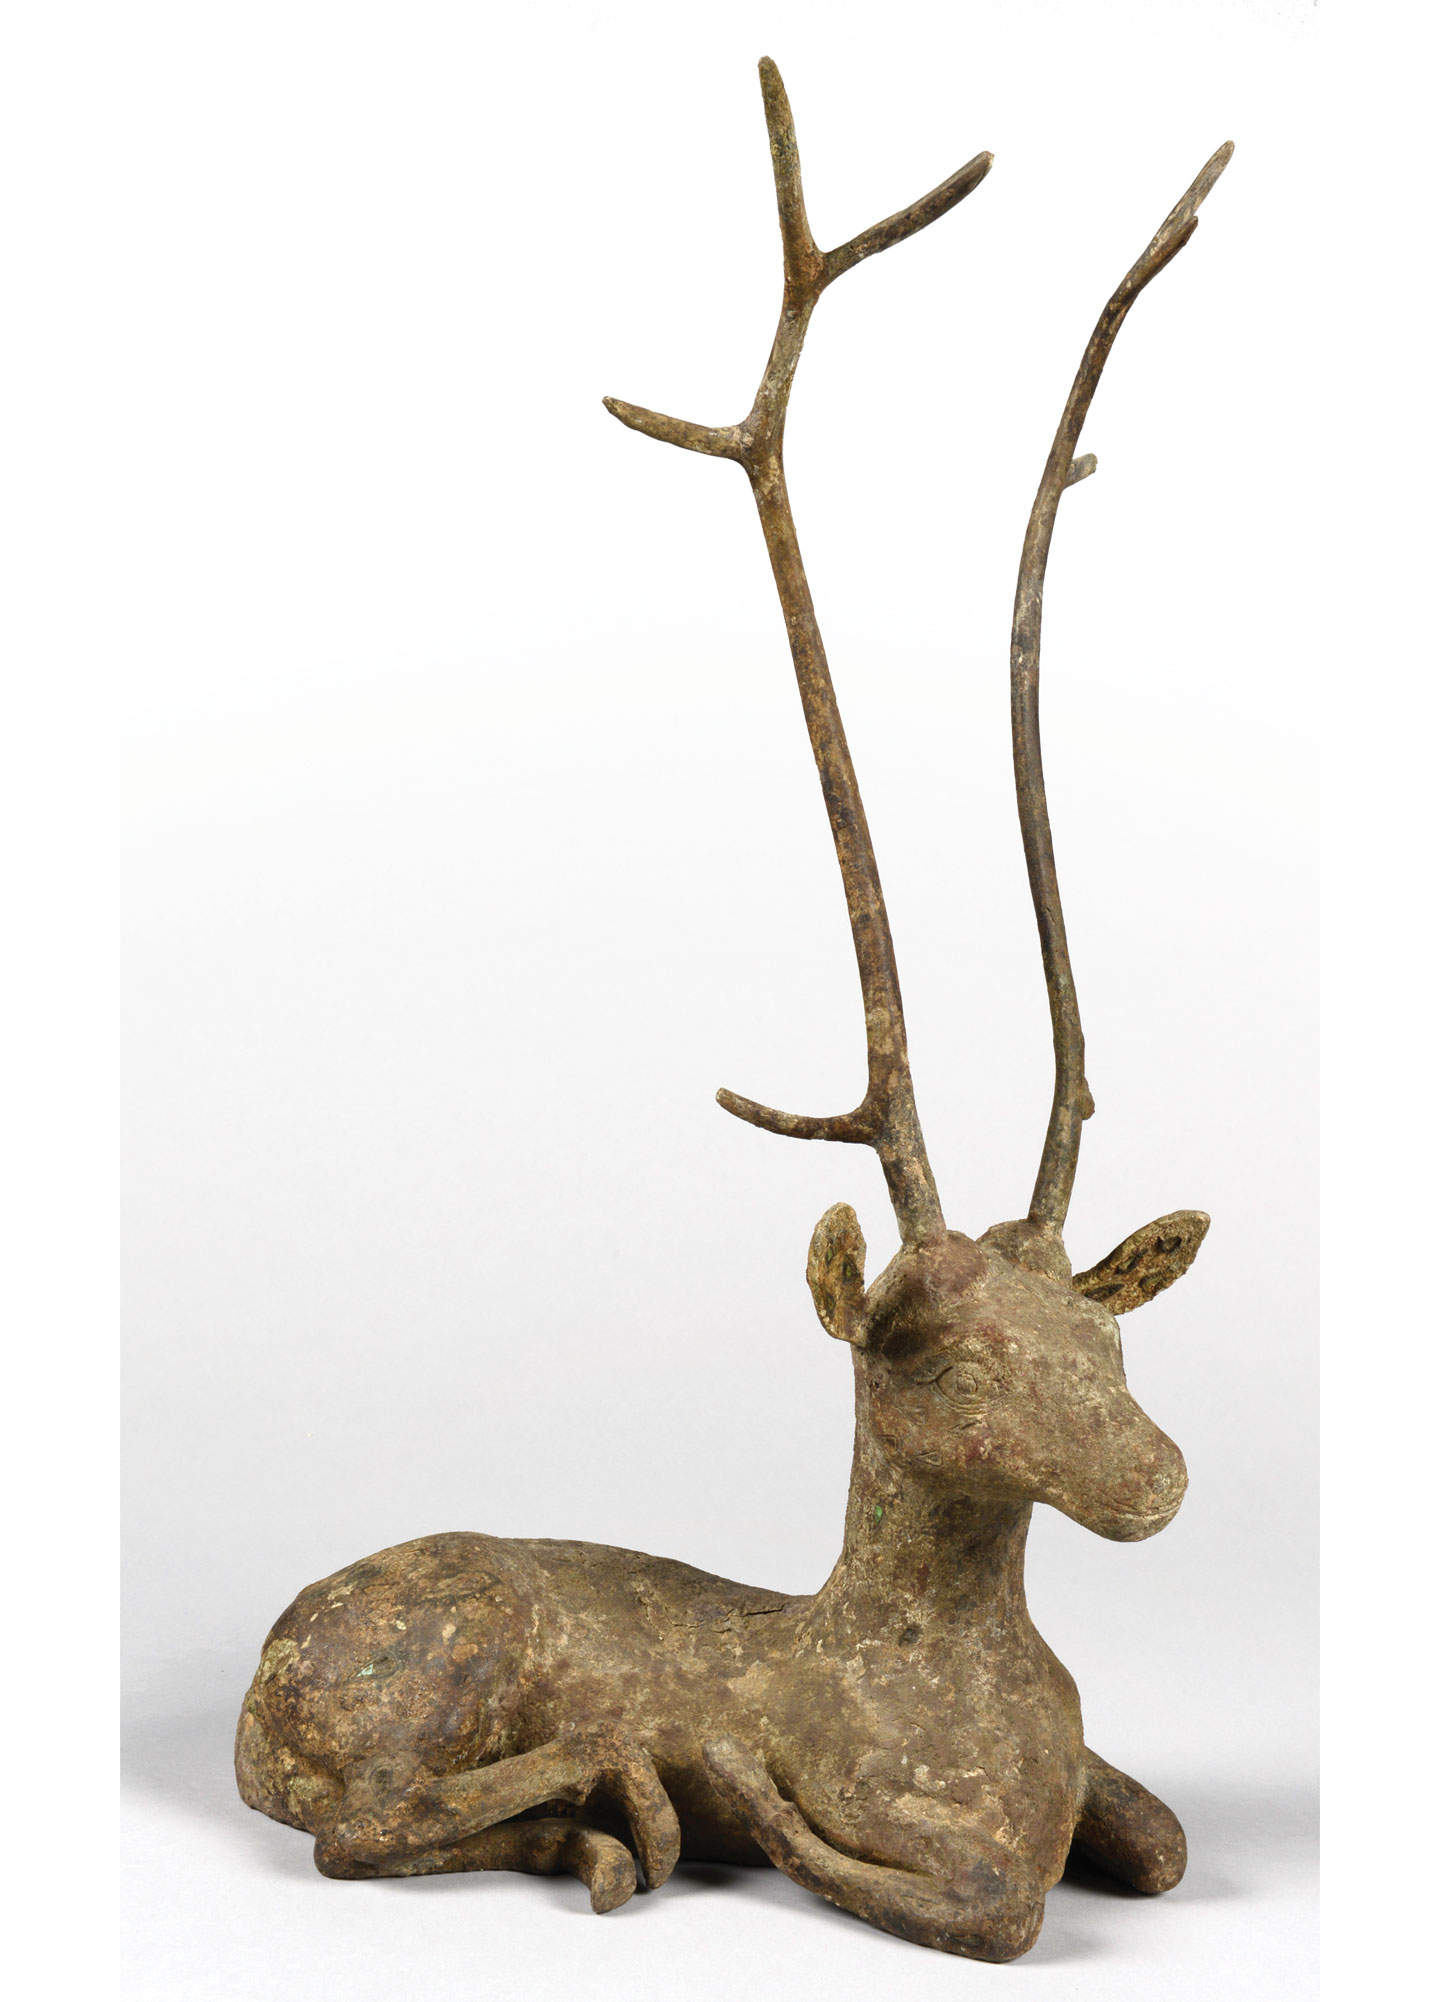 Bronze Deer Inlaid with Gems<br> Western Han or earlier<br> Height (including antlers): 52 cm<br> Length: 26 cm<br> Unearthed in the Western Han Tomb at Sanlidun, Lianshui County, Jiangsu Province<br> <br> The Bronze Deer is on display in the Art Museum of CUHK in the exhibition 'From the Realm of the Immortals: Meanings and Representations of the Deer from the Nanjing Museum', until 28 May 2017